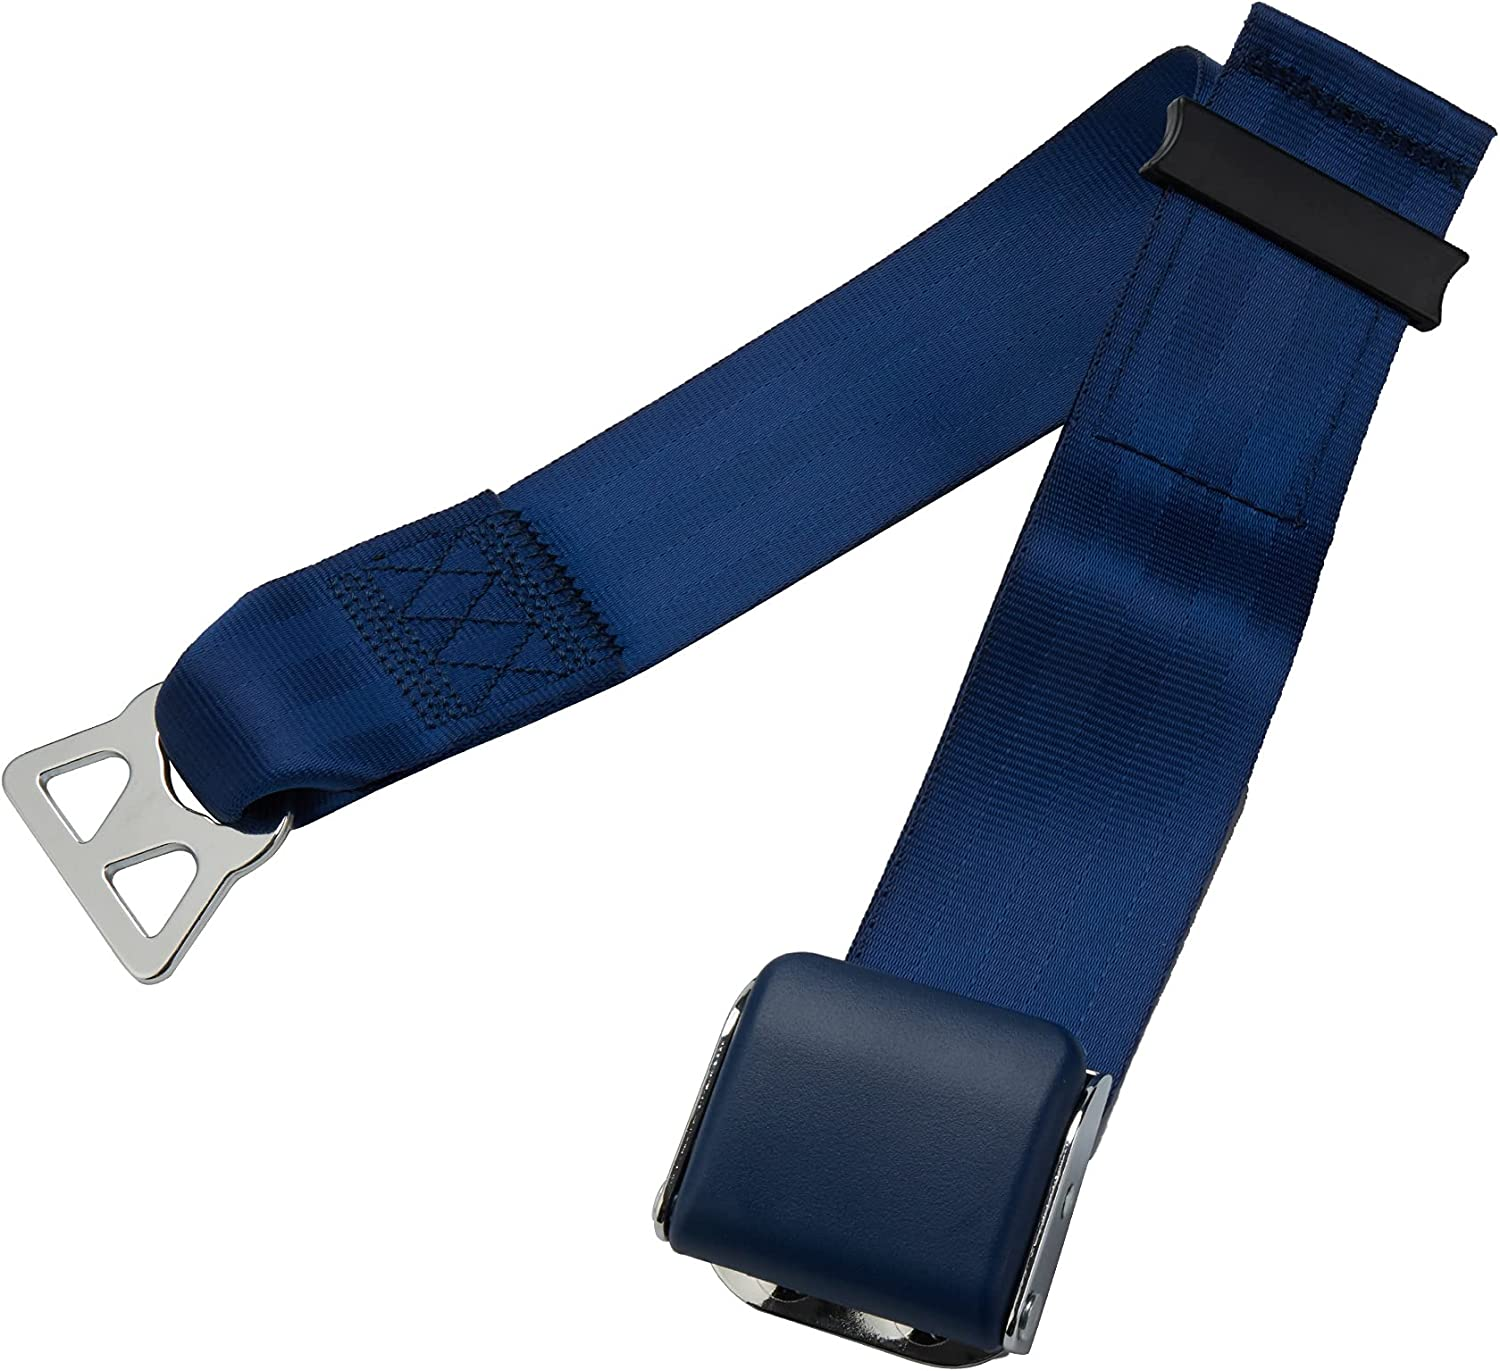 Vimforth Airplane Seatbelt Extender Portable Extension Safety Belt 7-24 Inch Airplane Seat Belt Extension E11 Safety Certified Only for Southwest Airlines